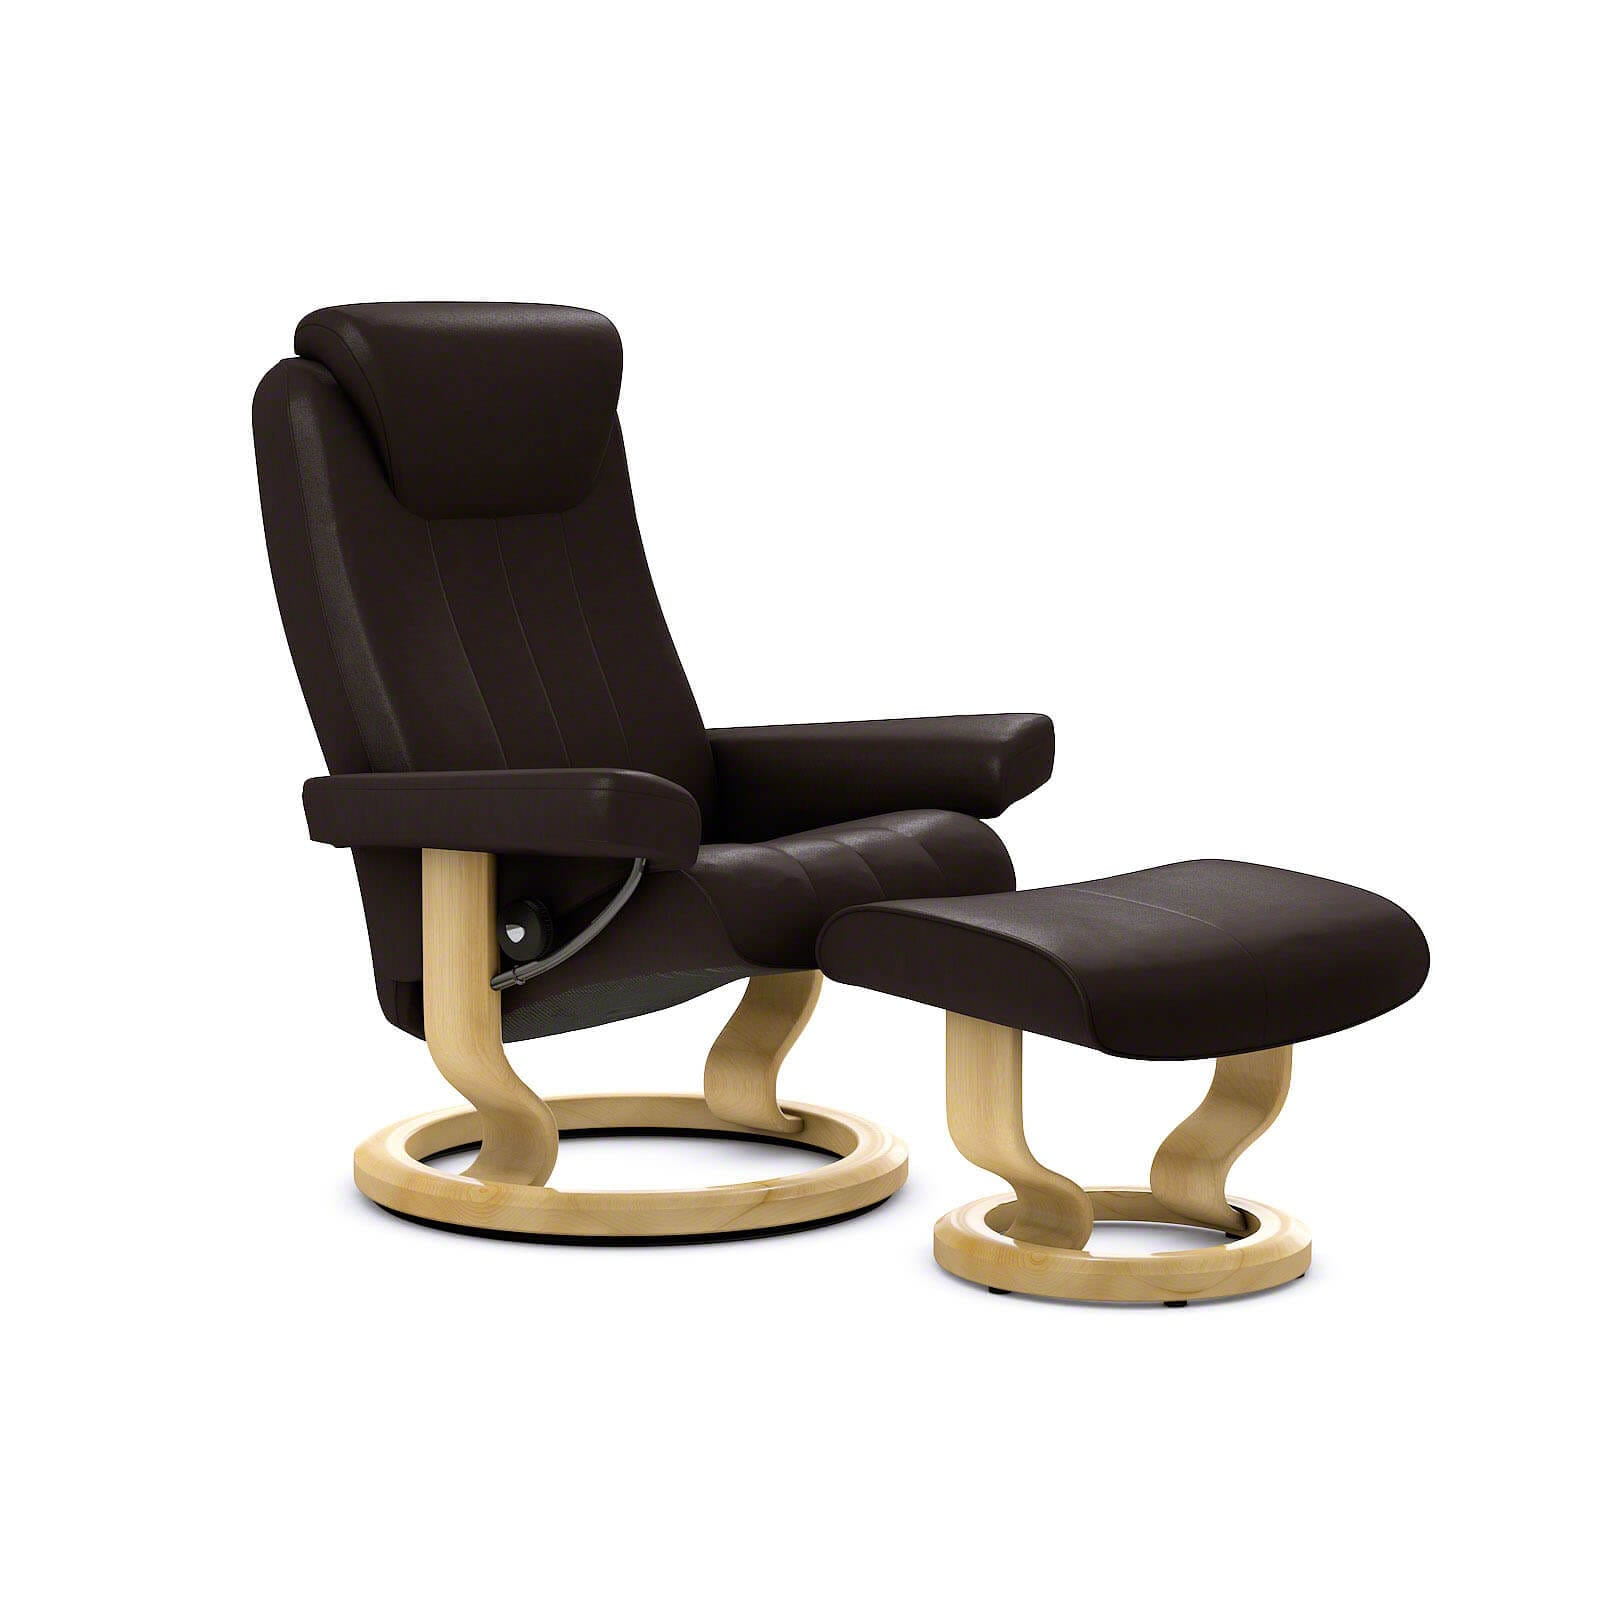 Stressless Sessel Bliss Stressless Bliss Sessel Paloma Chocolate Mit Hocker